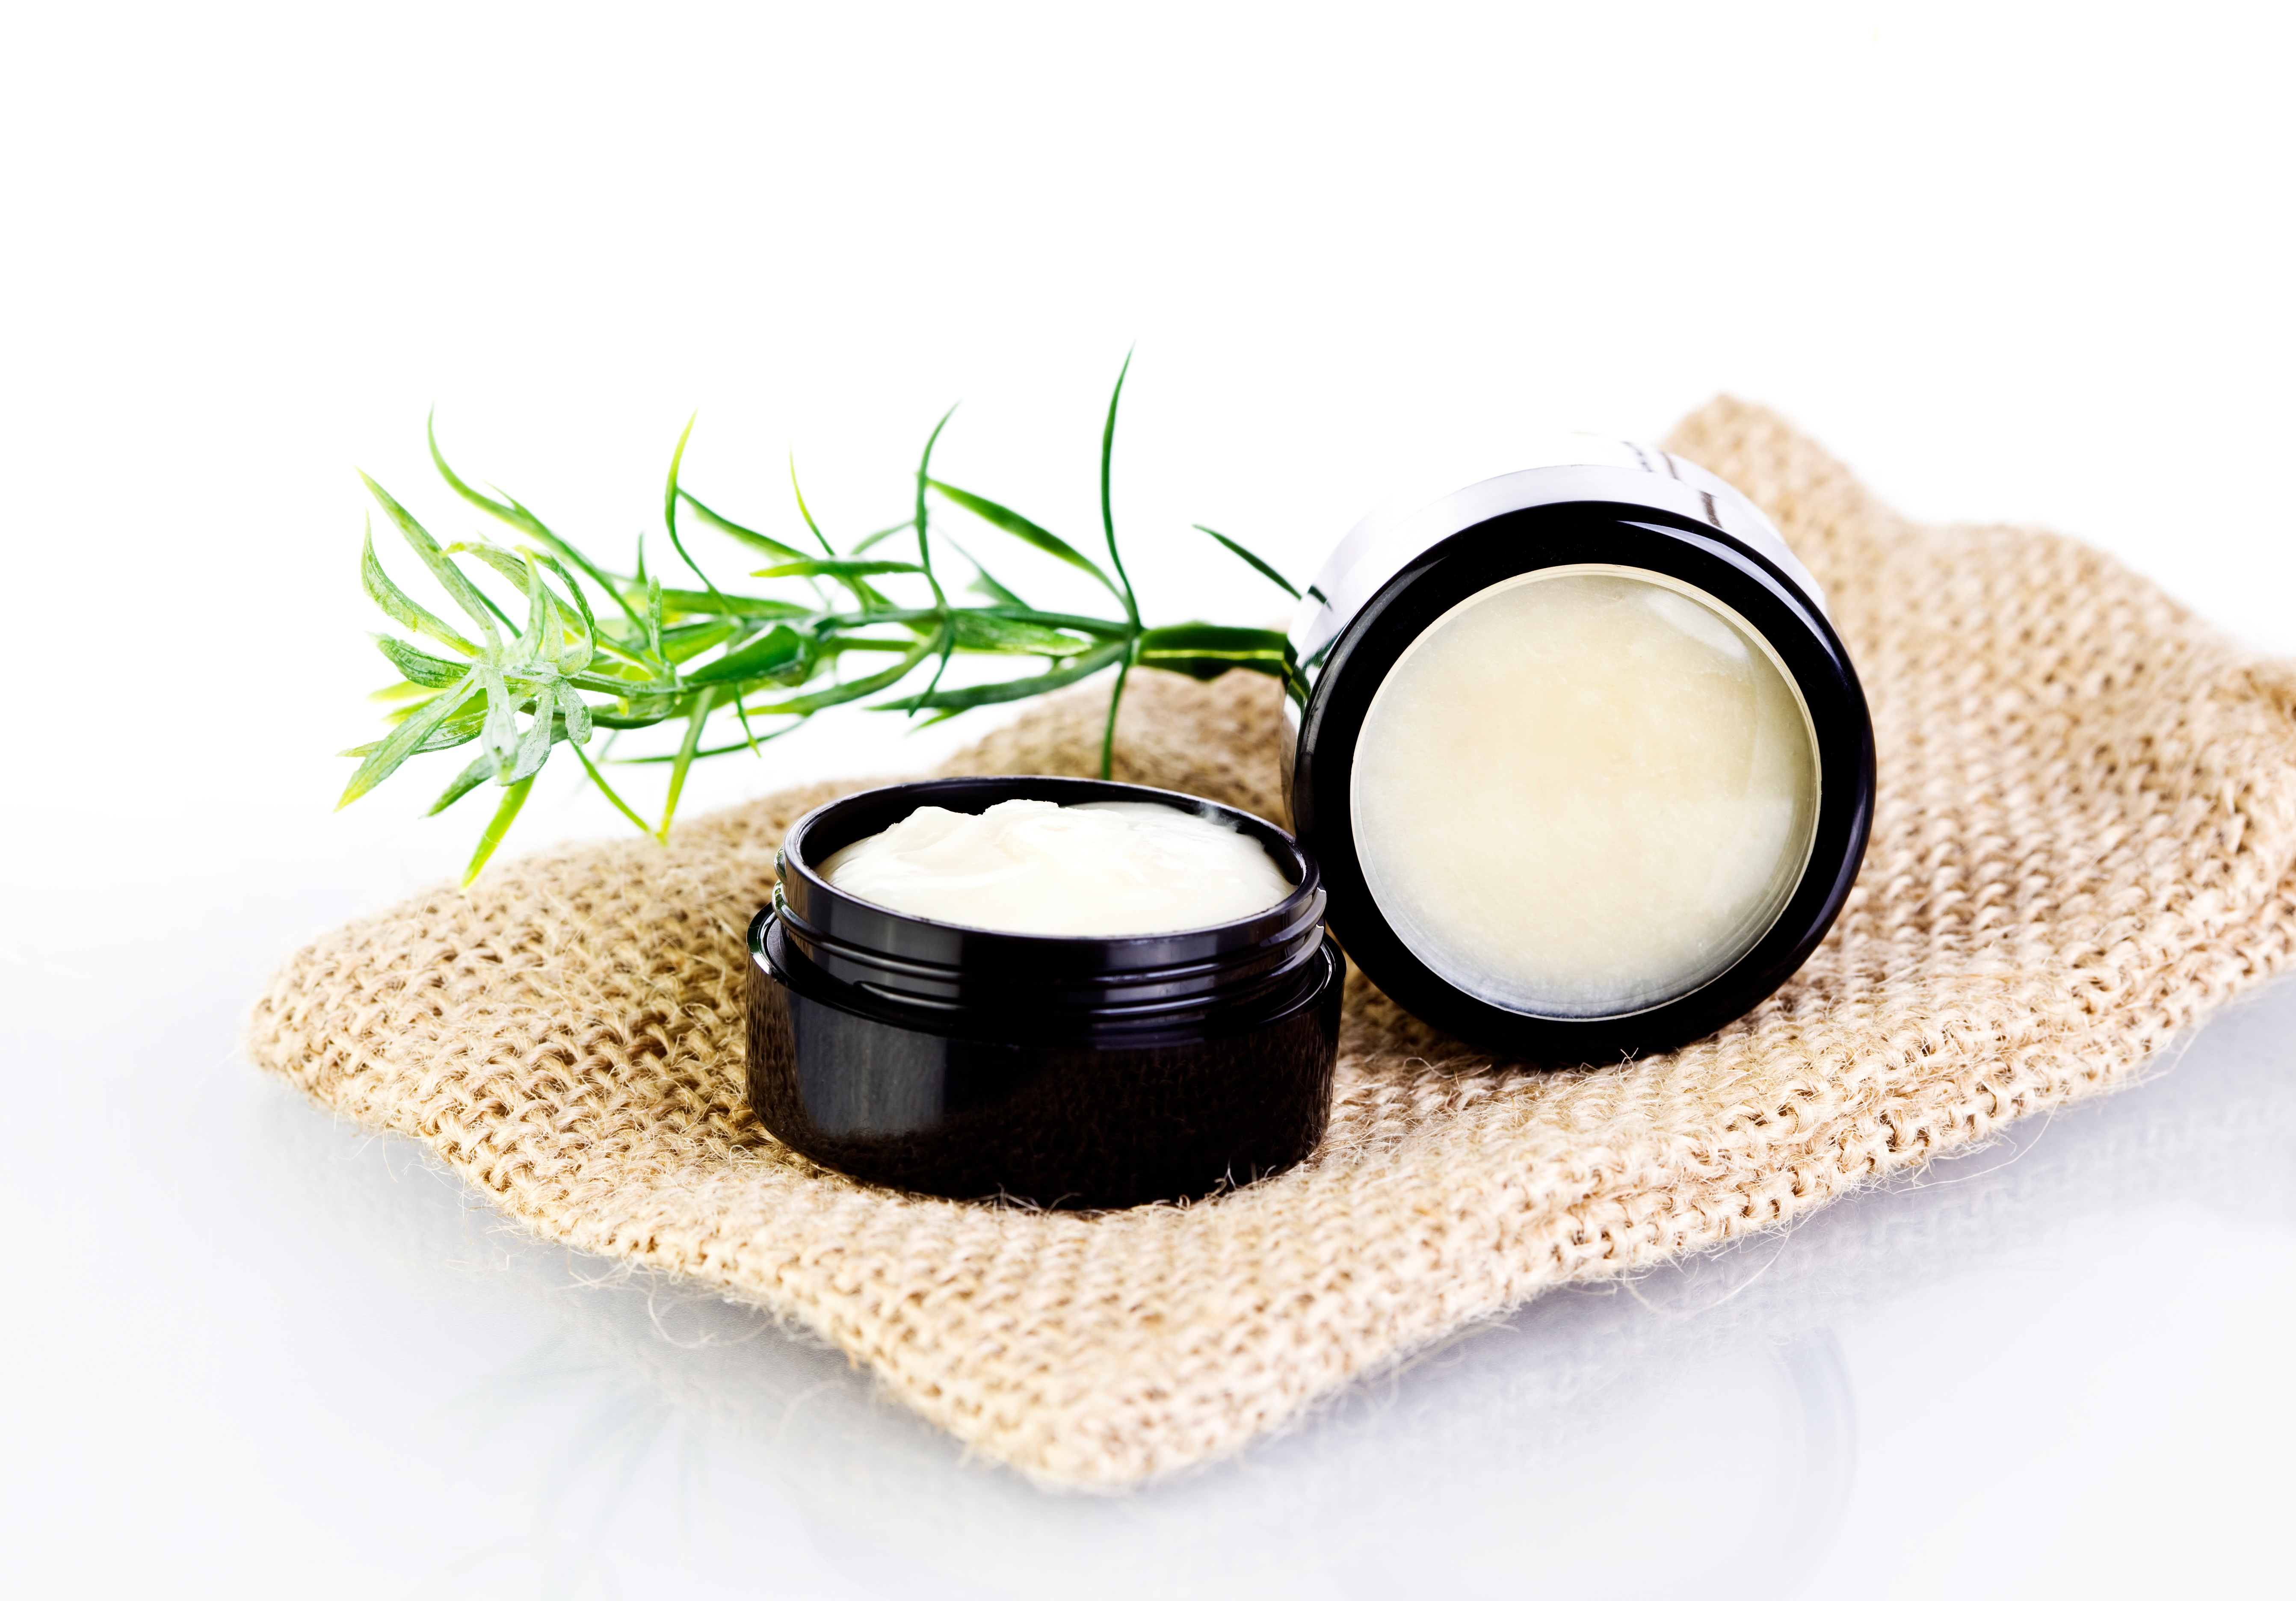 Flavors can be used in lip balm and other personal care products.